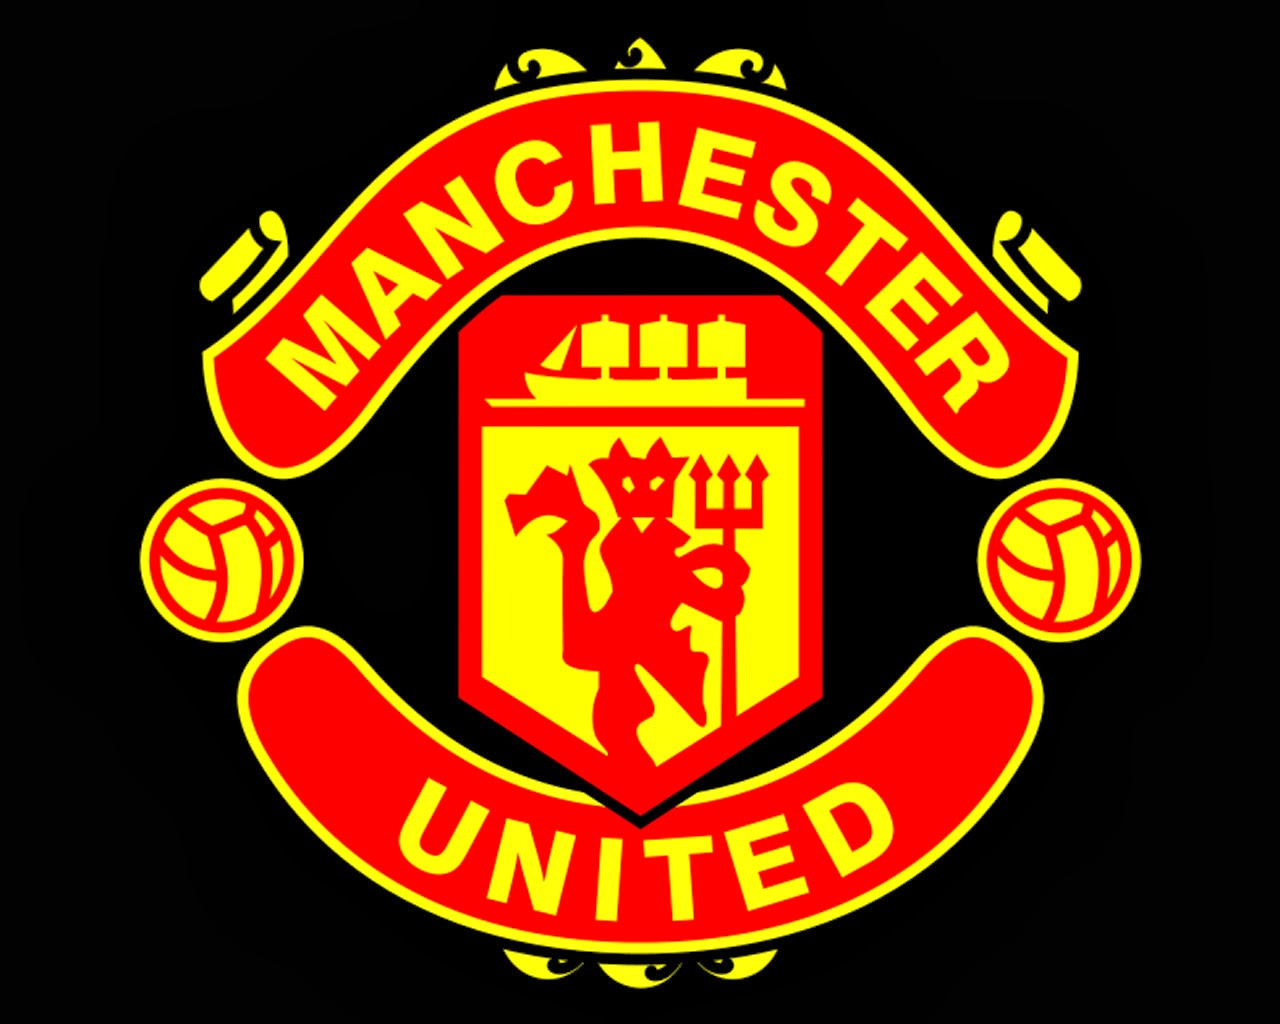 Cool football logo latest manchester united logo quiz logo latest manchester united logo voltagebd Gallery